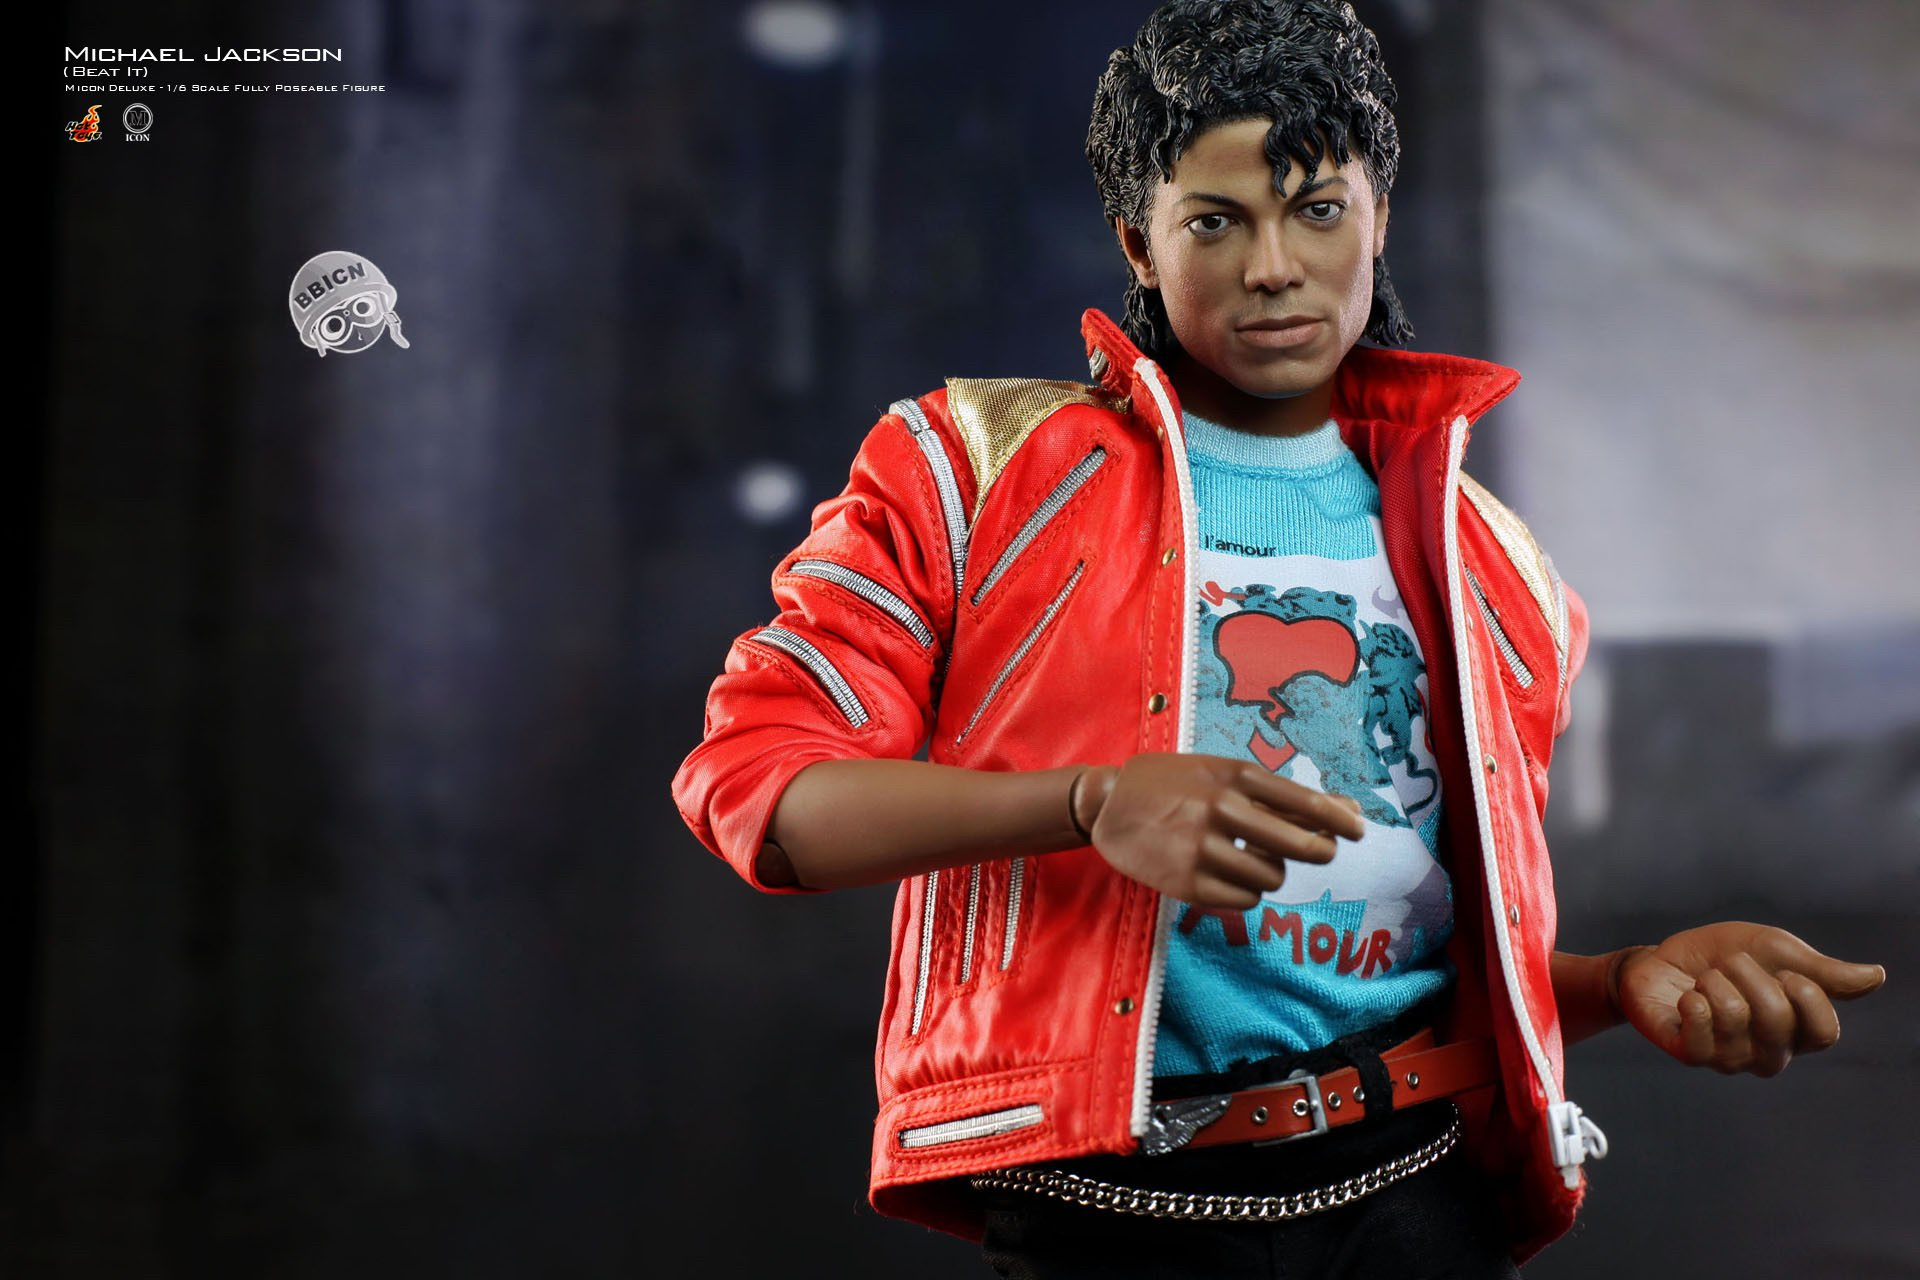 [NUOVE FOTO] Nuova Action Figure di Beat It - Pagina 2 094038jnmpx2dn7n6foji4